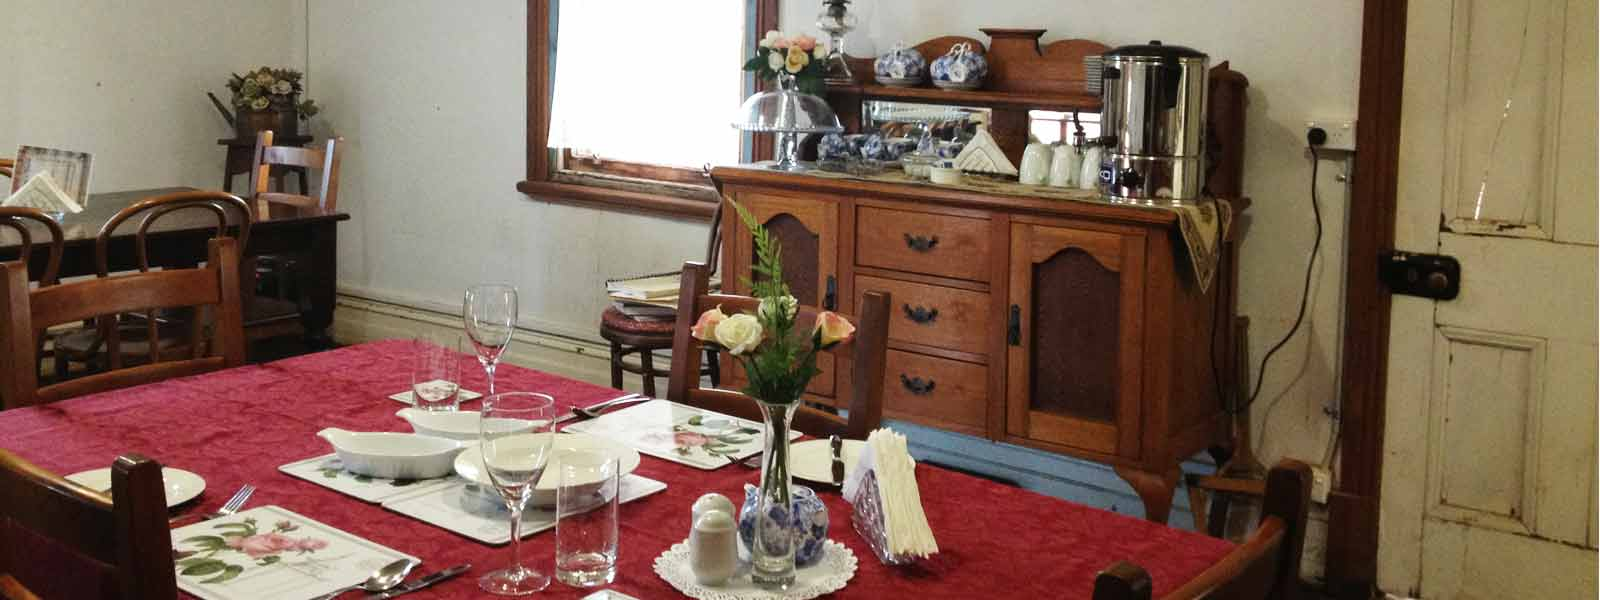 tea-room-goomalling, country-charm, warm-country-hospitality